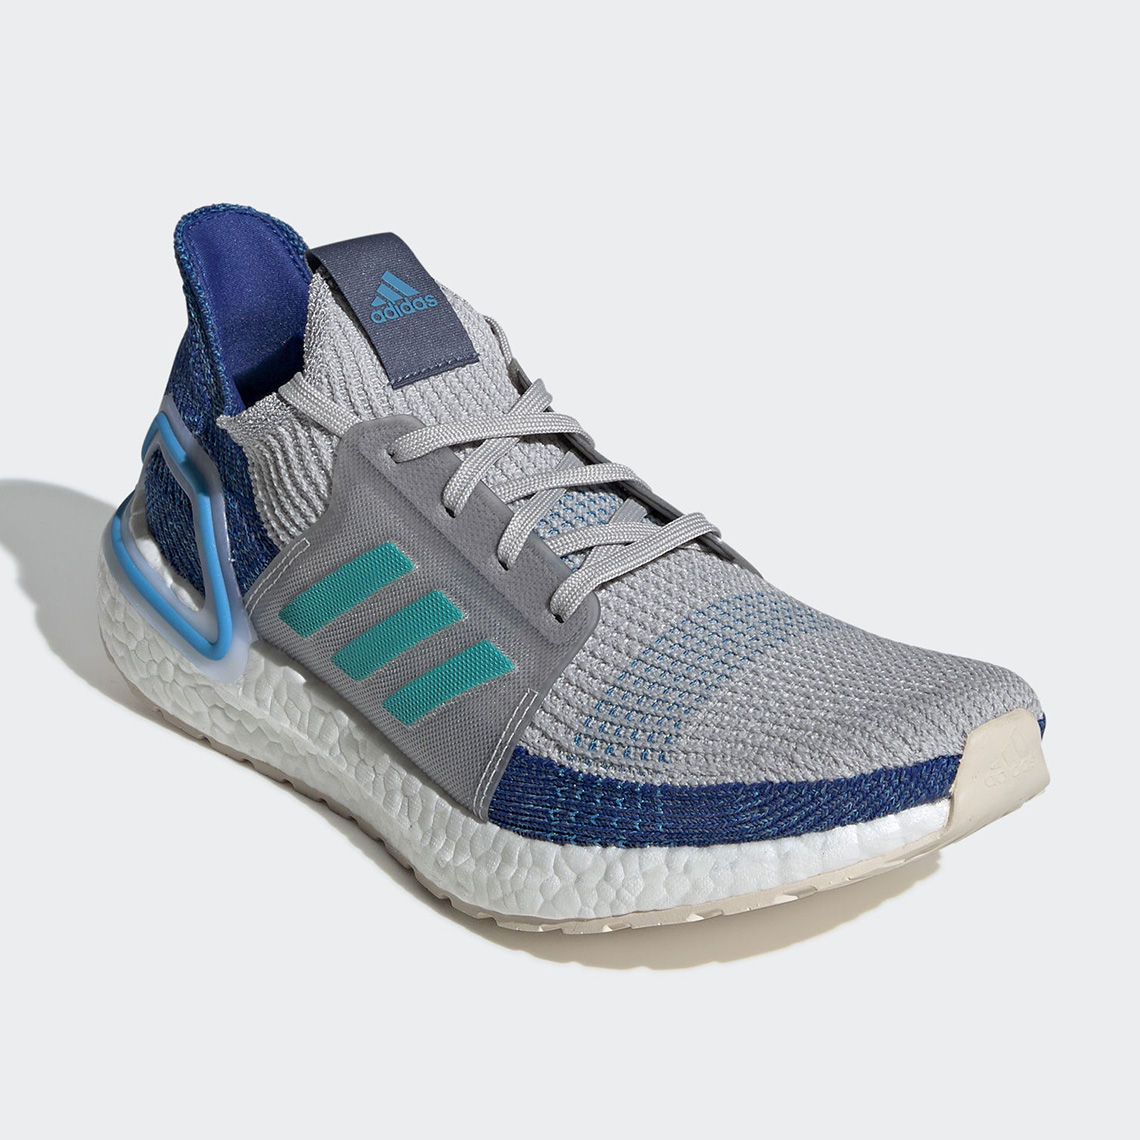 New adidas Ultraboost 19 colorways now available BusinessWorld  BusinessWorld